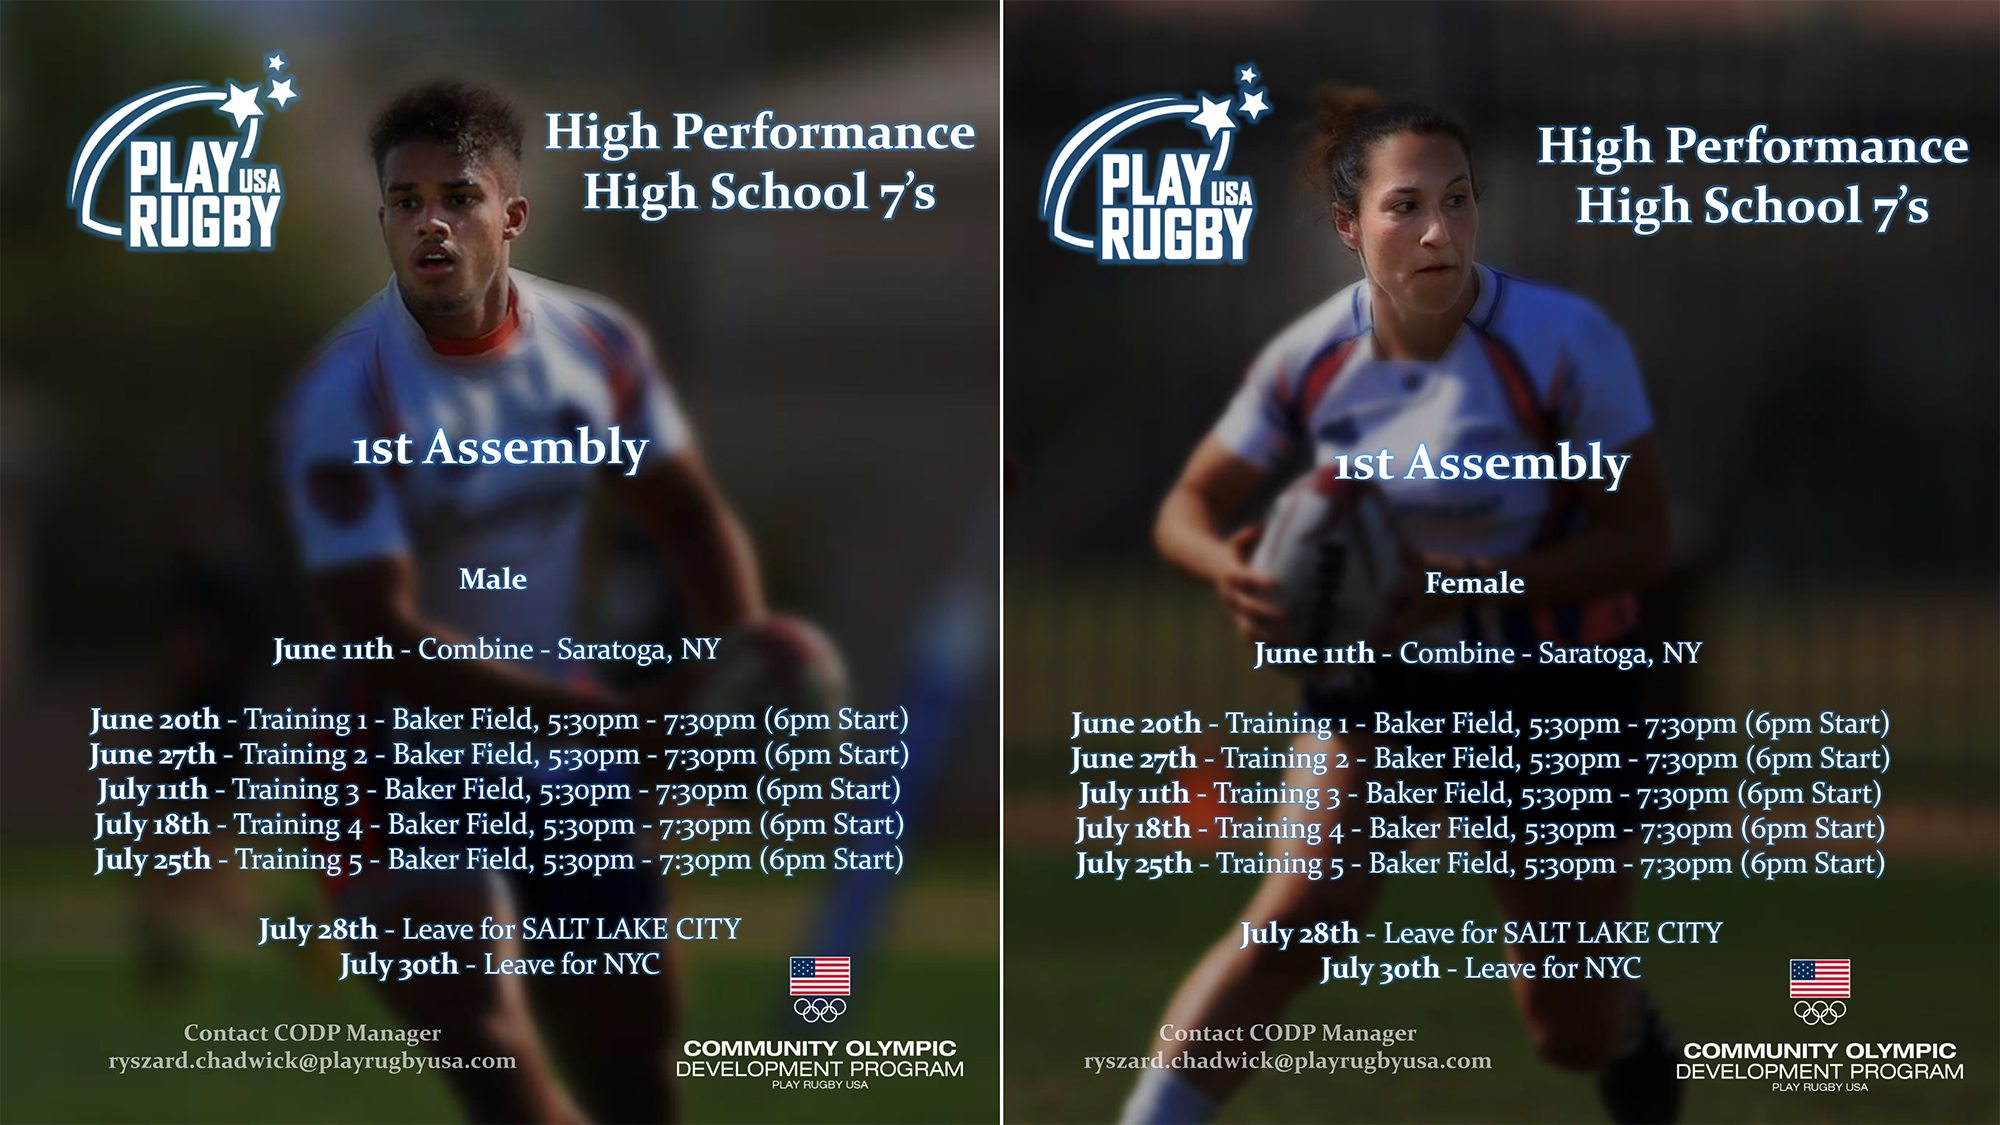 Boys and Girls High School Rugby Players Eligible for First Northeast Player Assembly